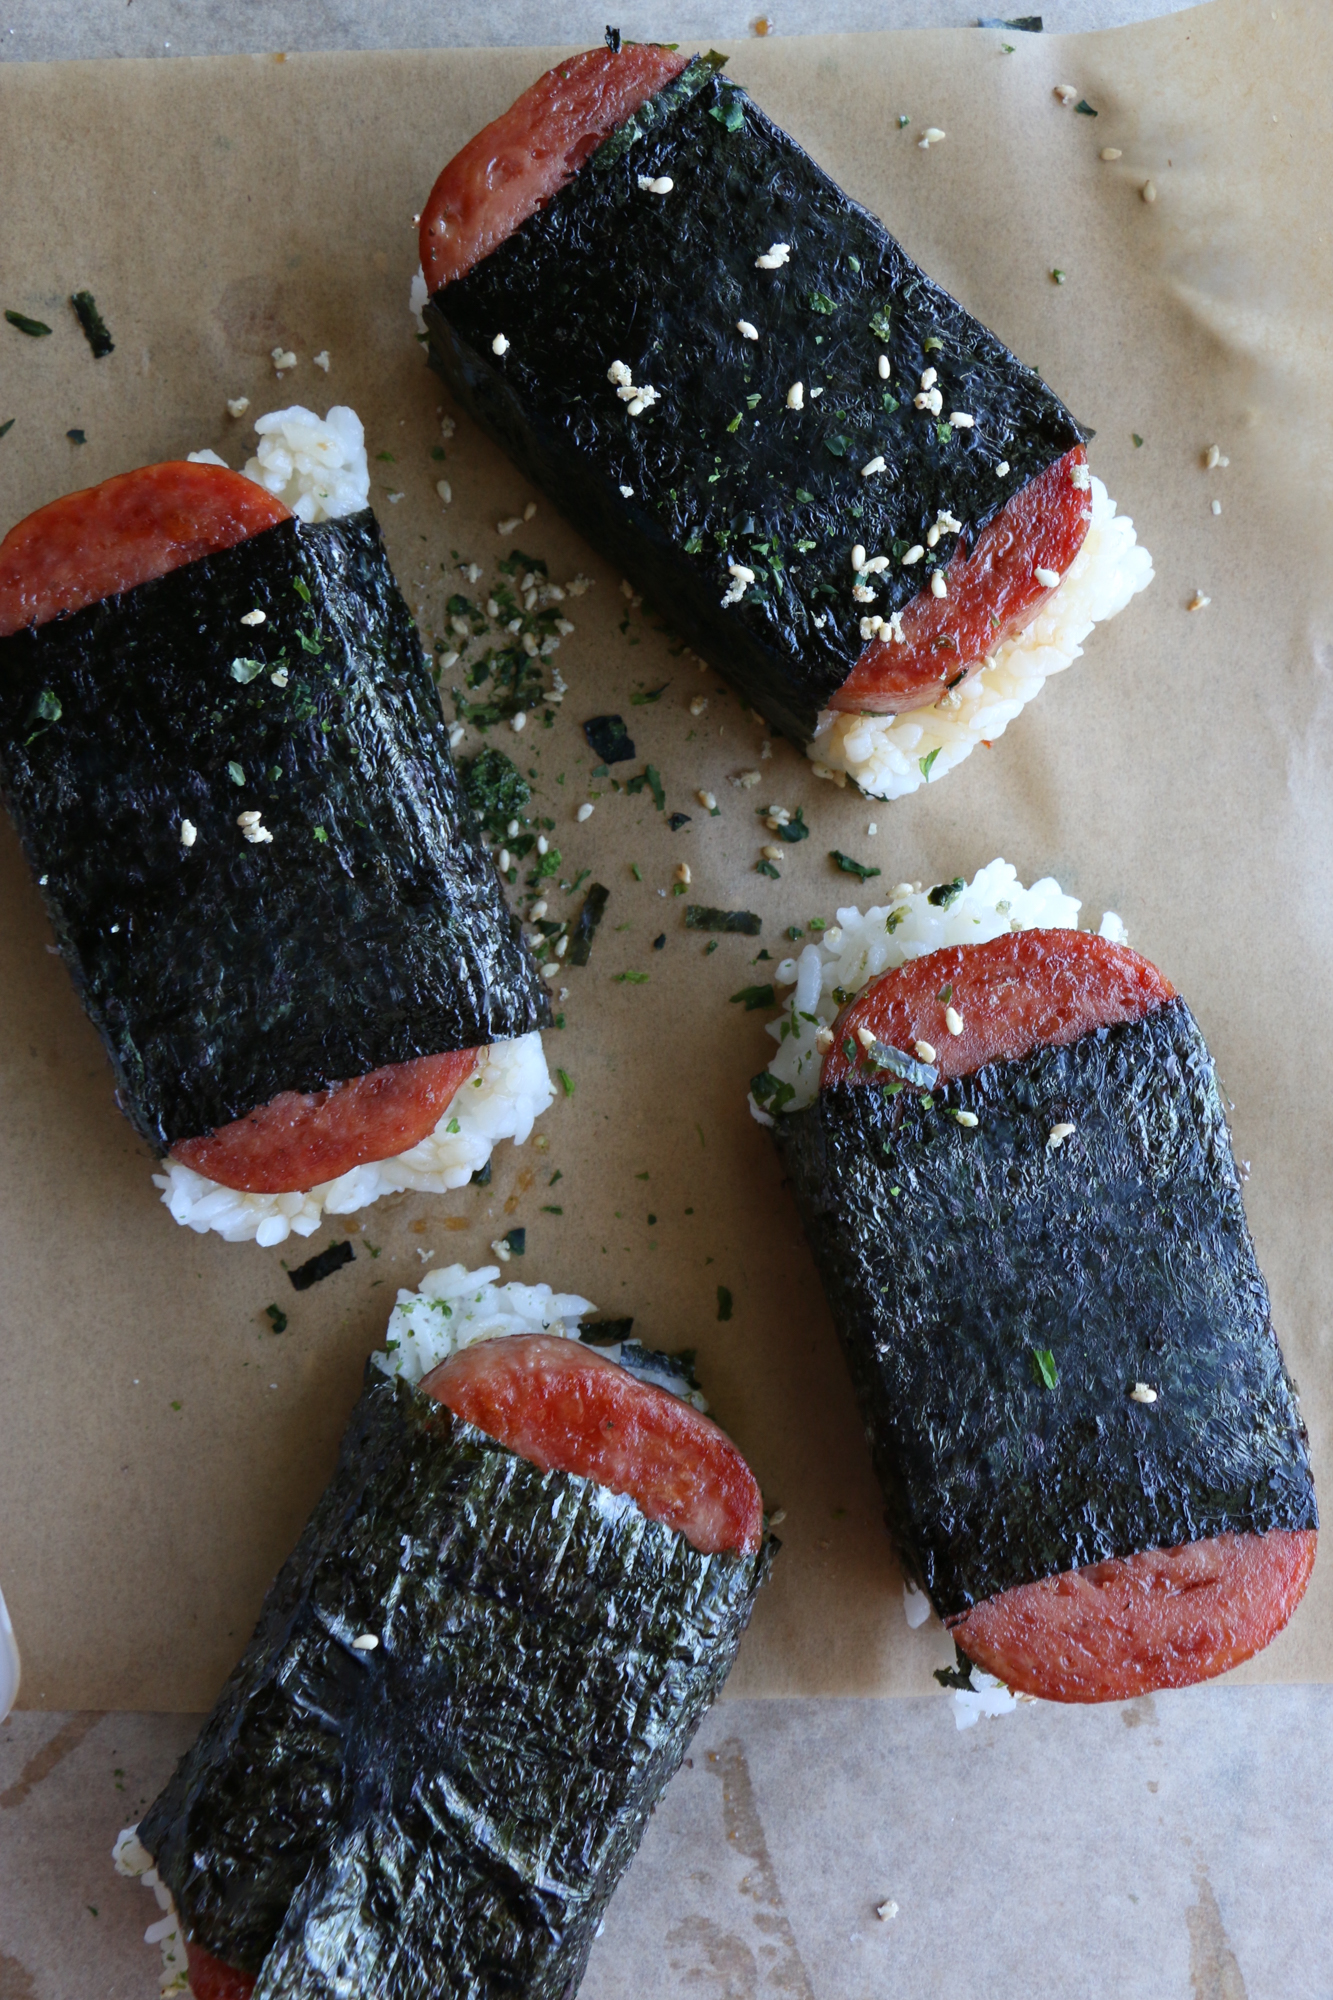 How To Make Spam Musubi. So delicious and so easy to make! Seasoned rice and spam, with furikake and wrapped in nori. It's so good!